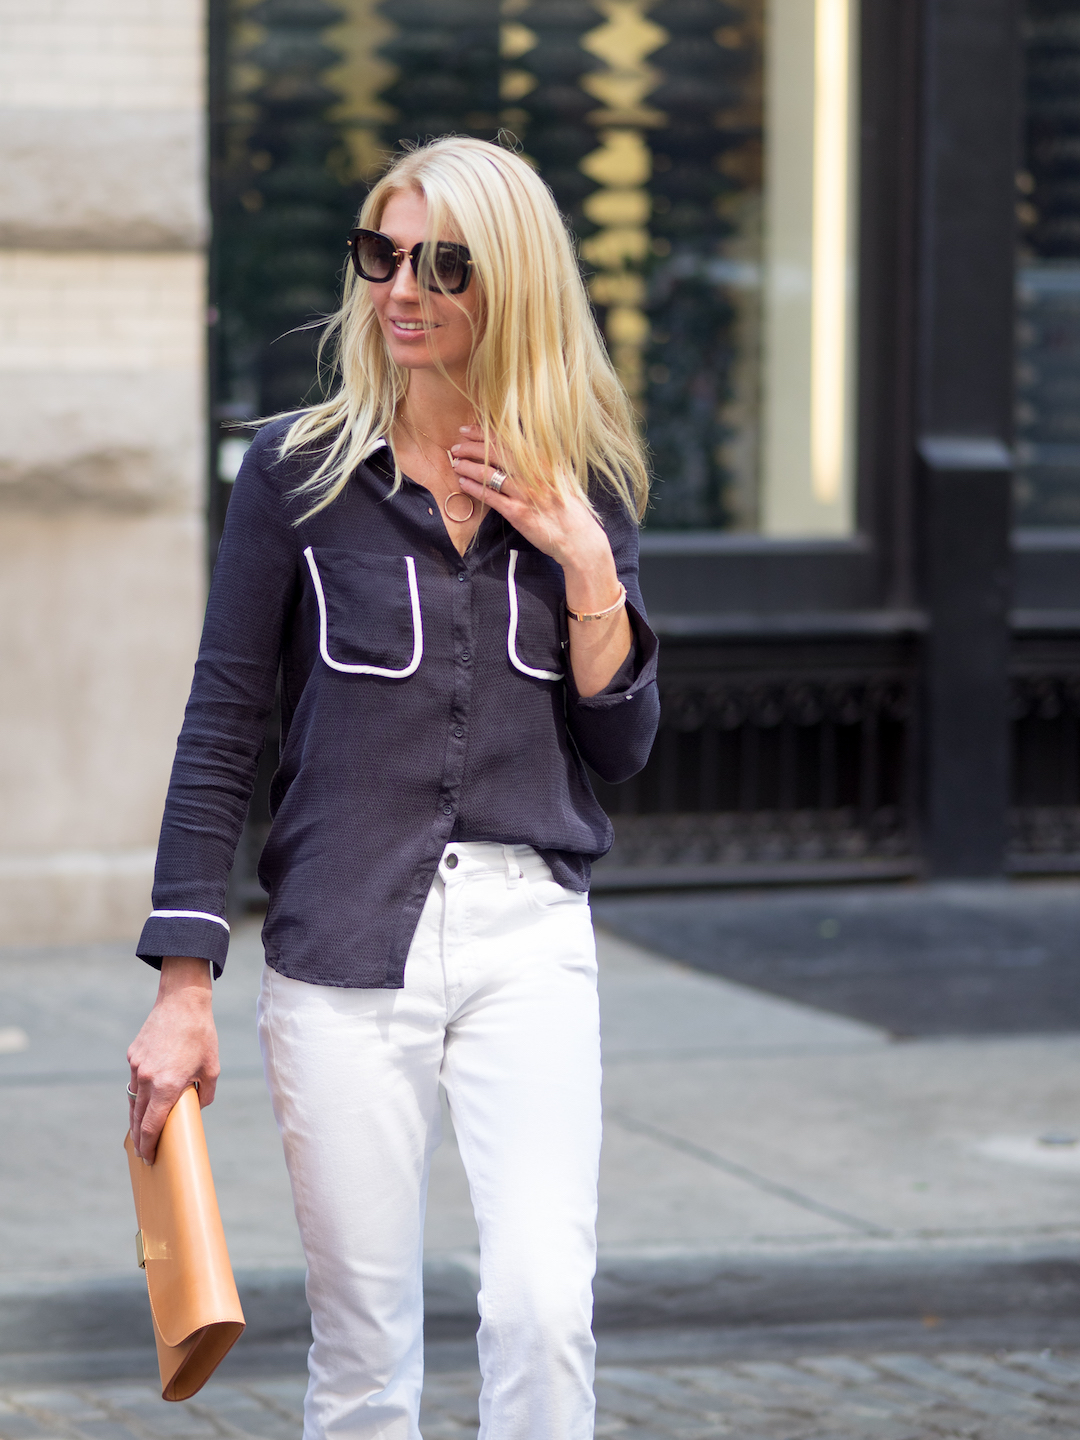 White_FLared_Jeans_look_Denise_Buschkuehle_Instyle_by_Marinke_Davelaar-1506